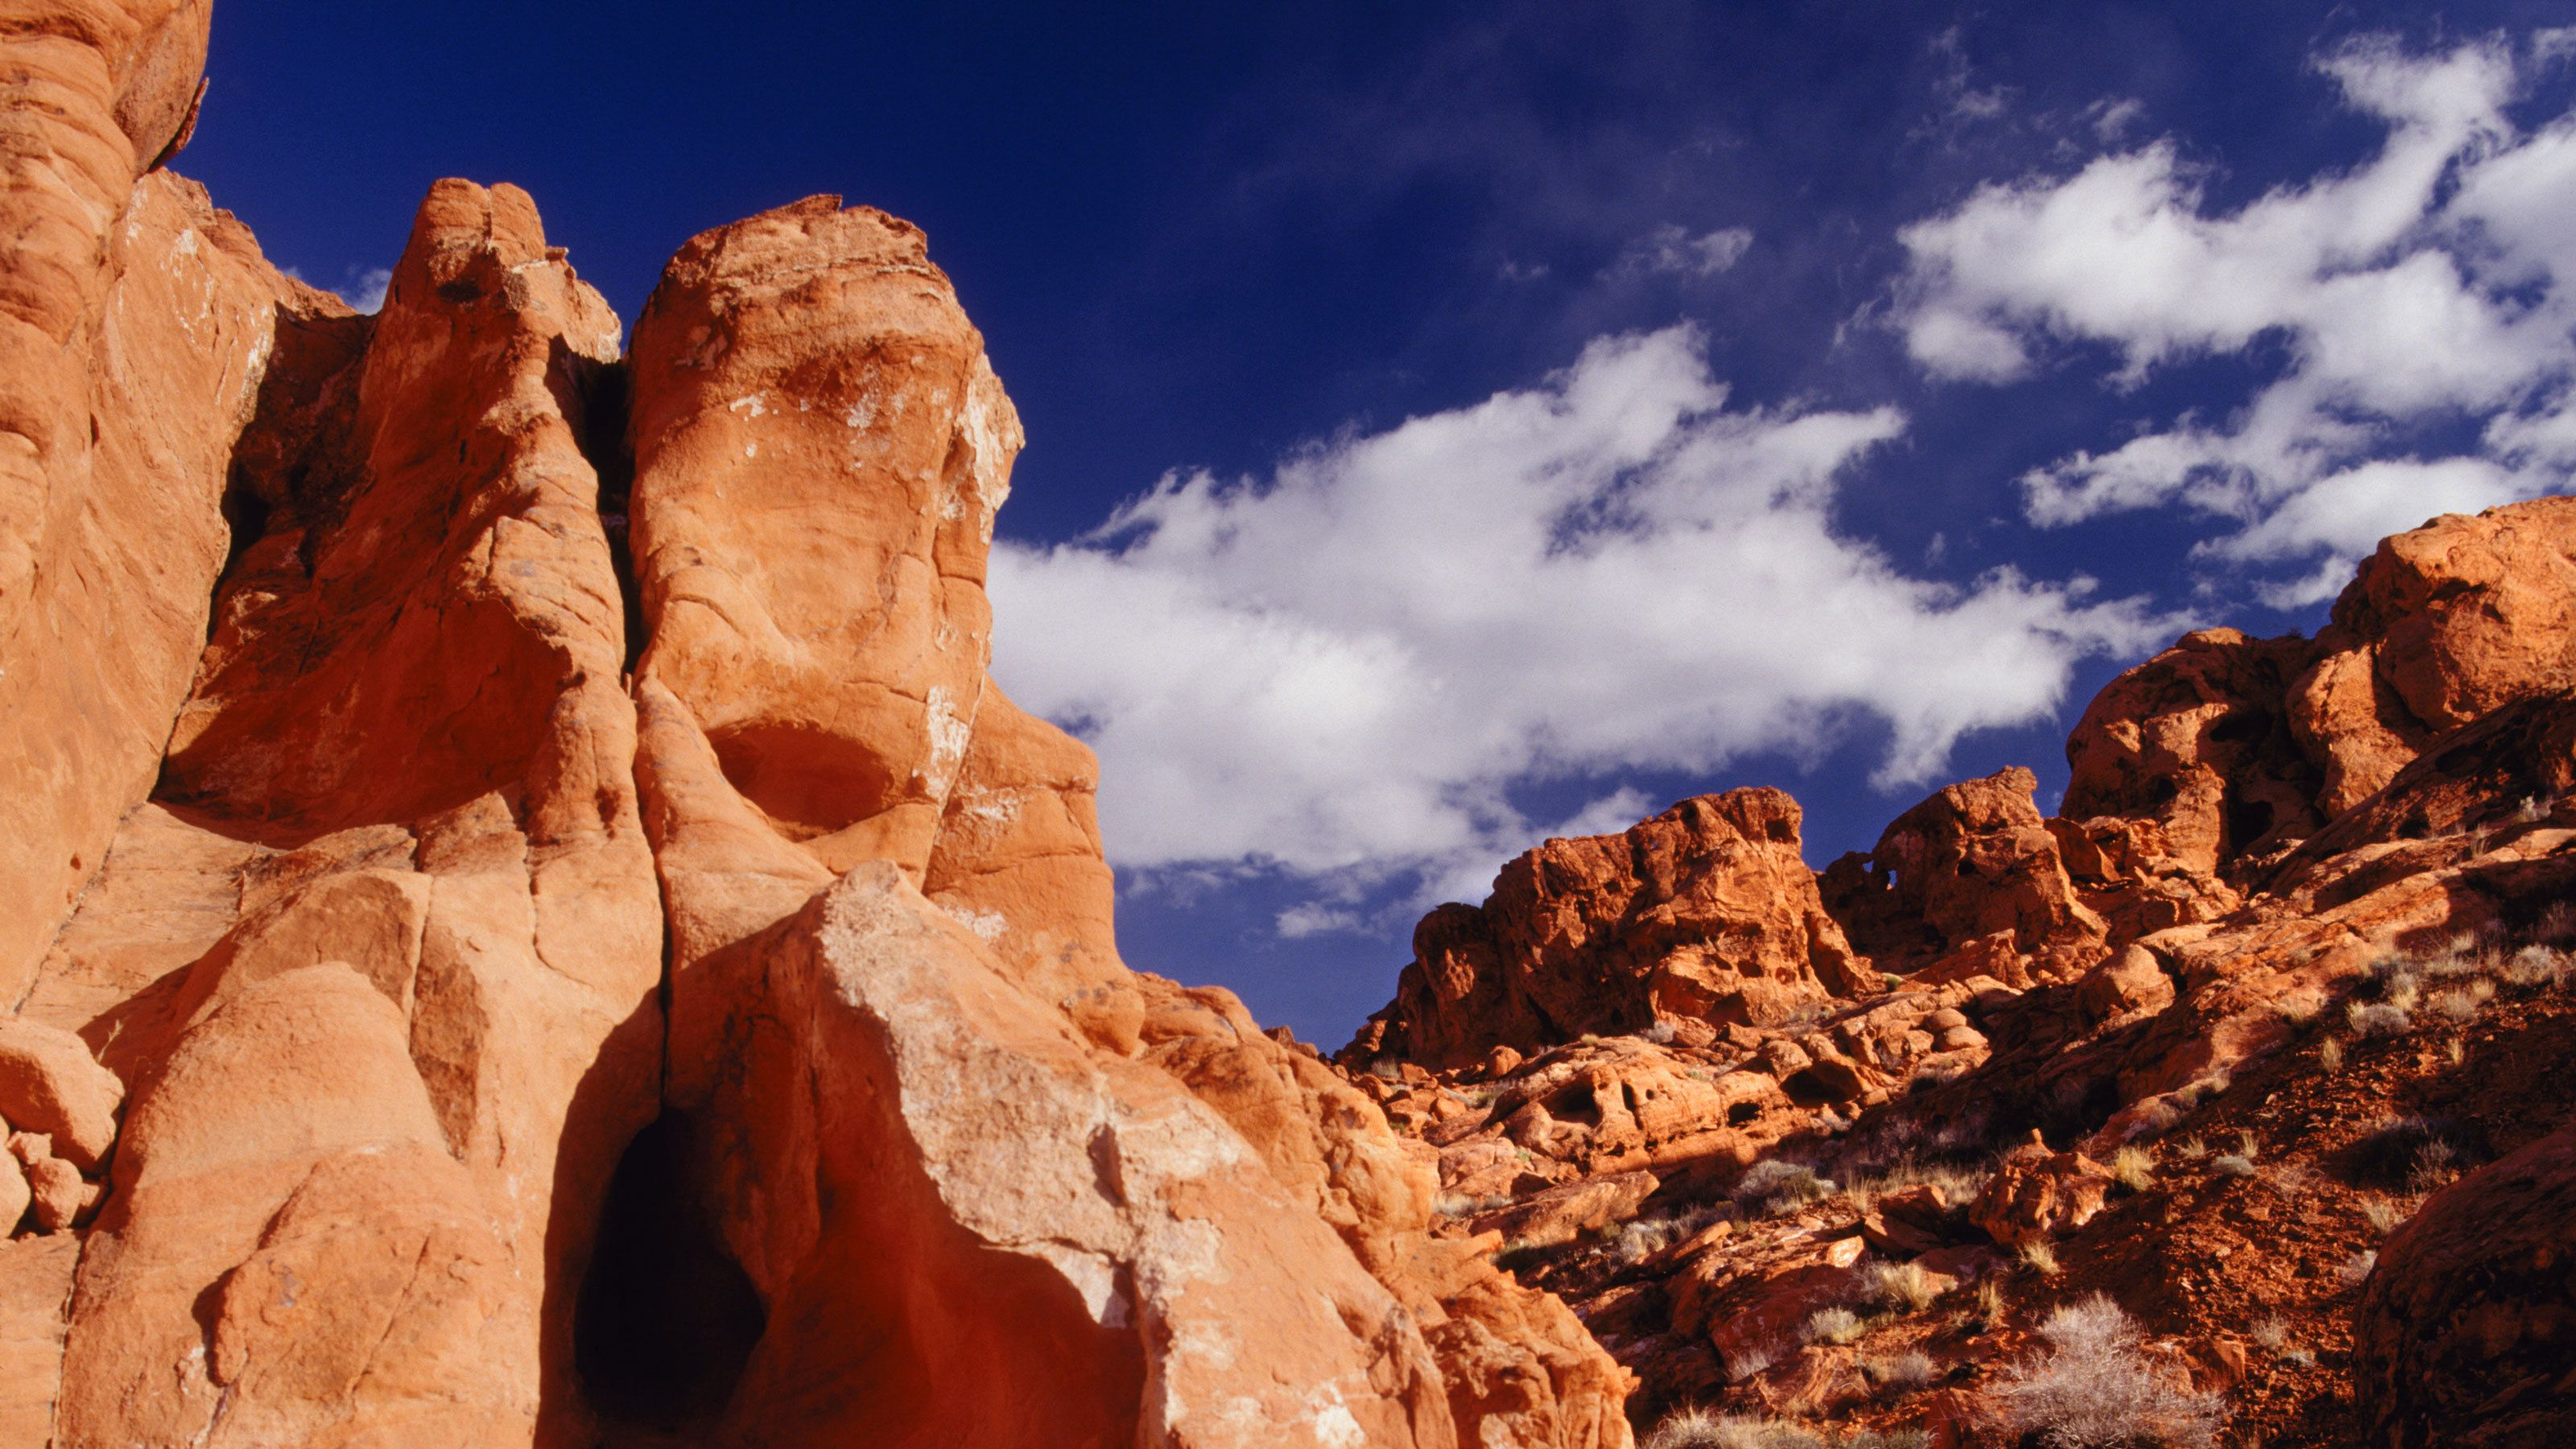 Rock formations in a Nevada desert.